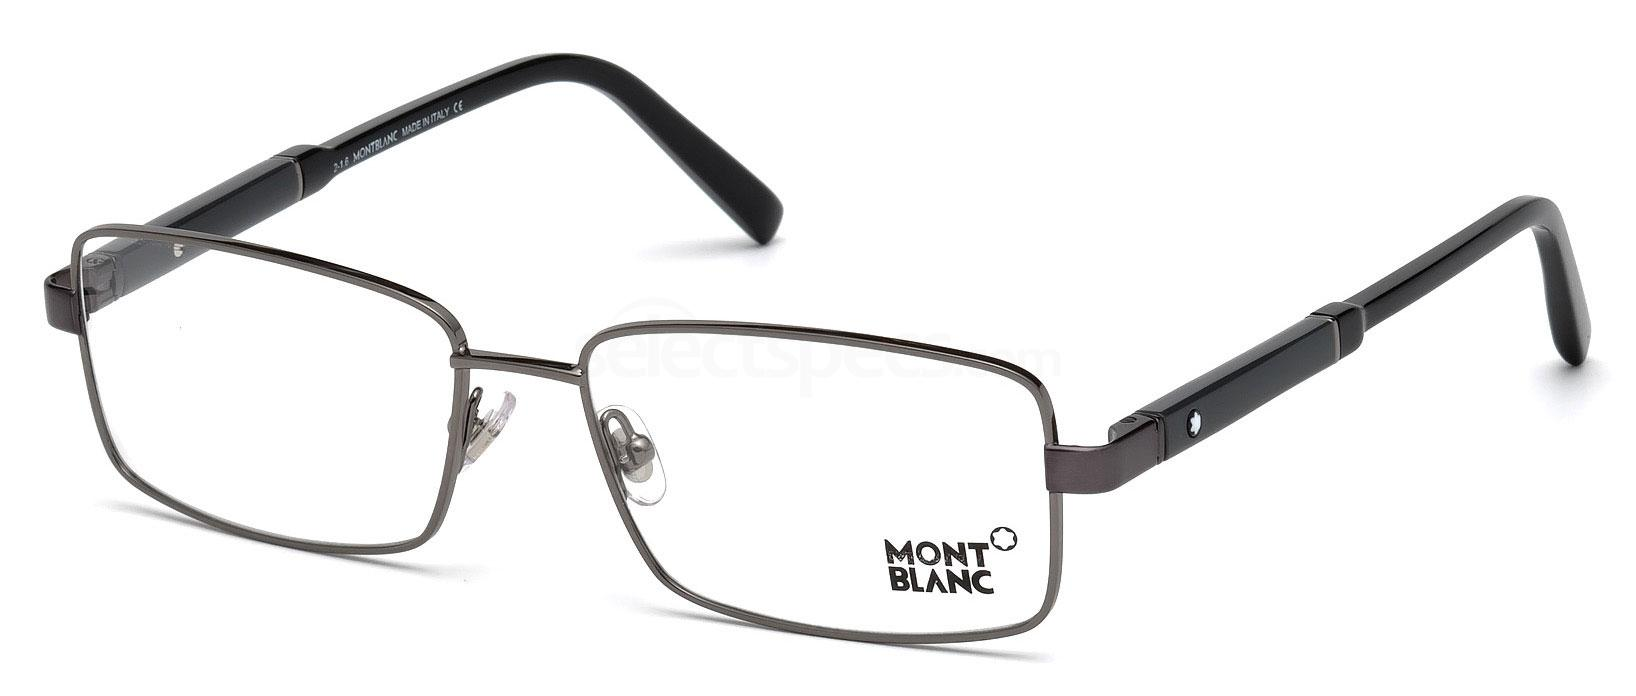 008 MB0640 Glasses, Mont Blanc